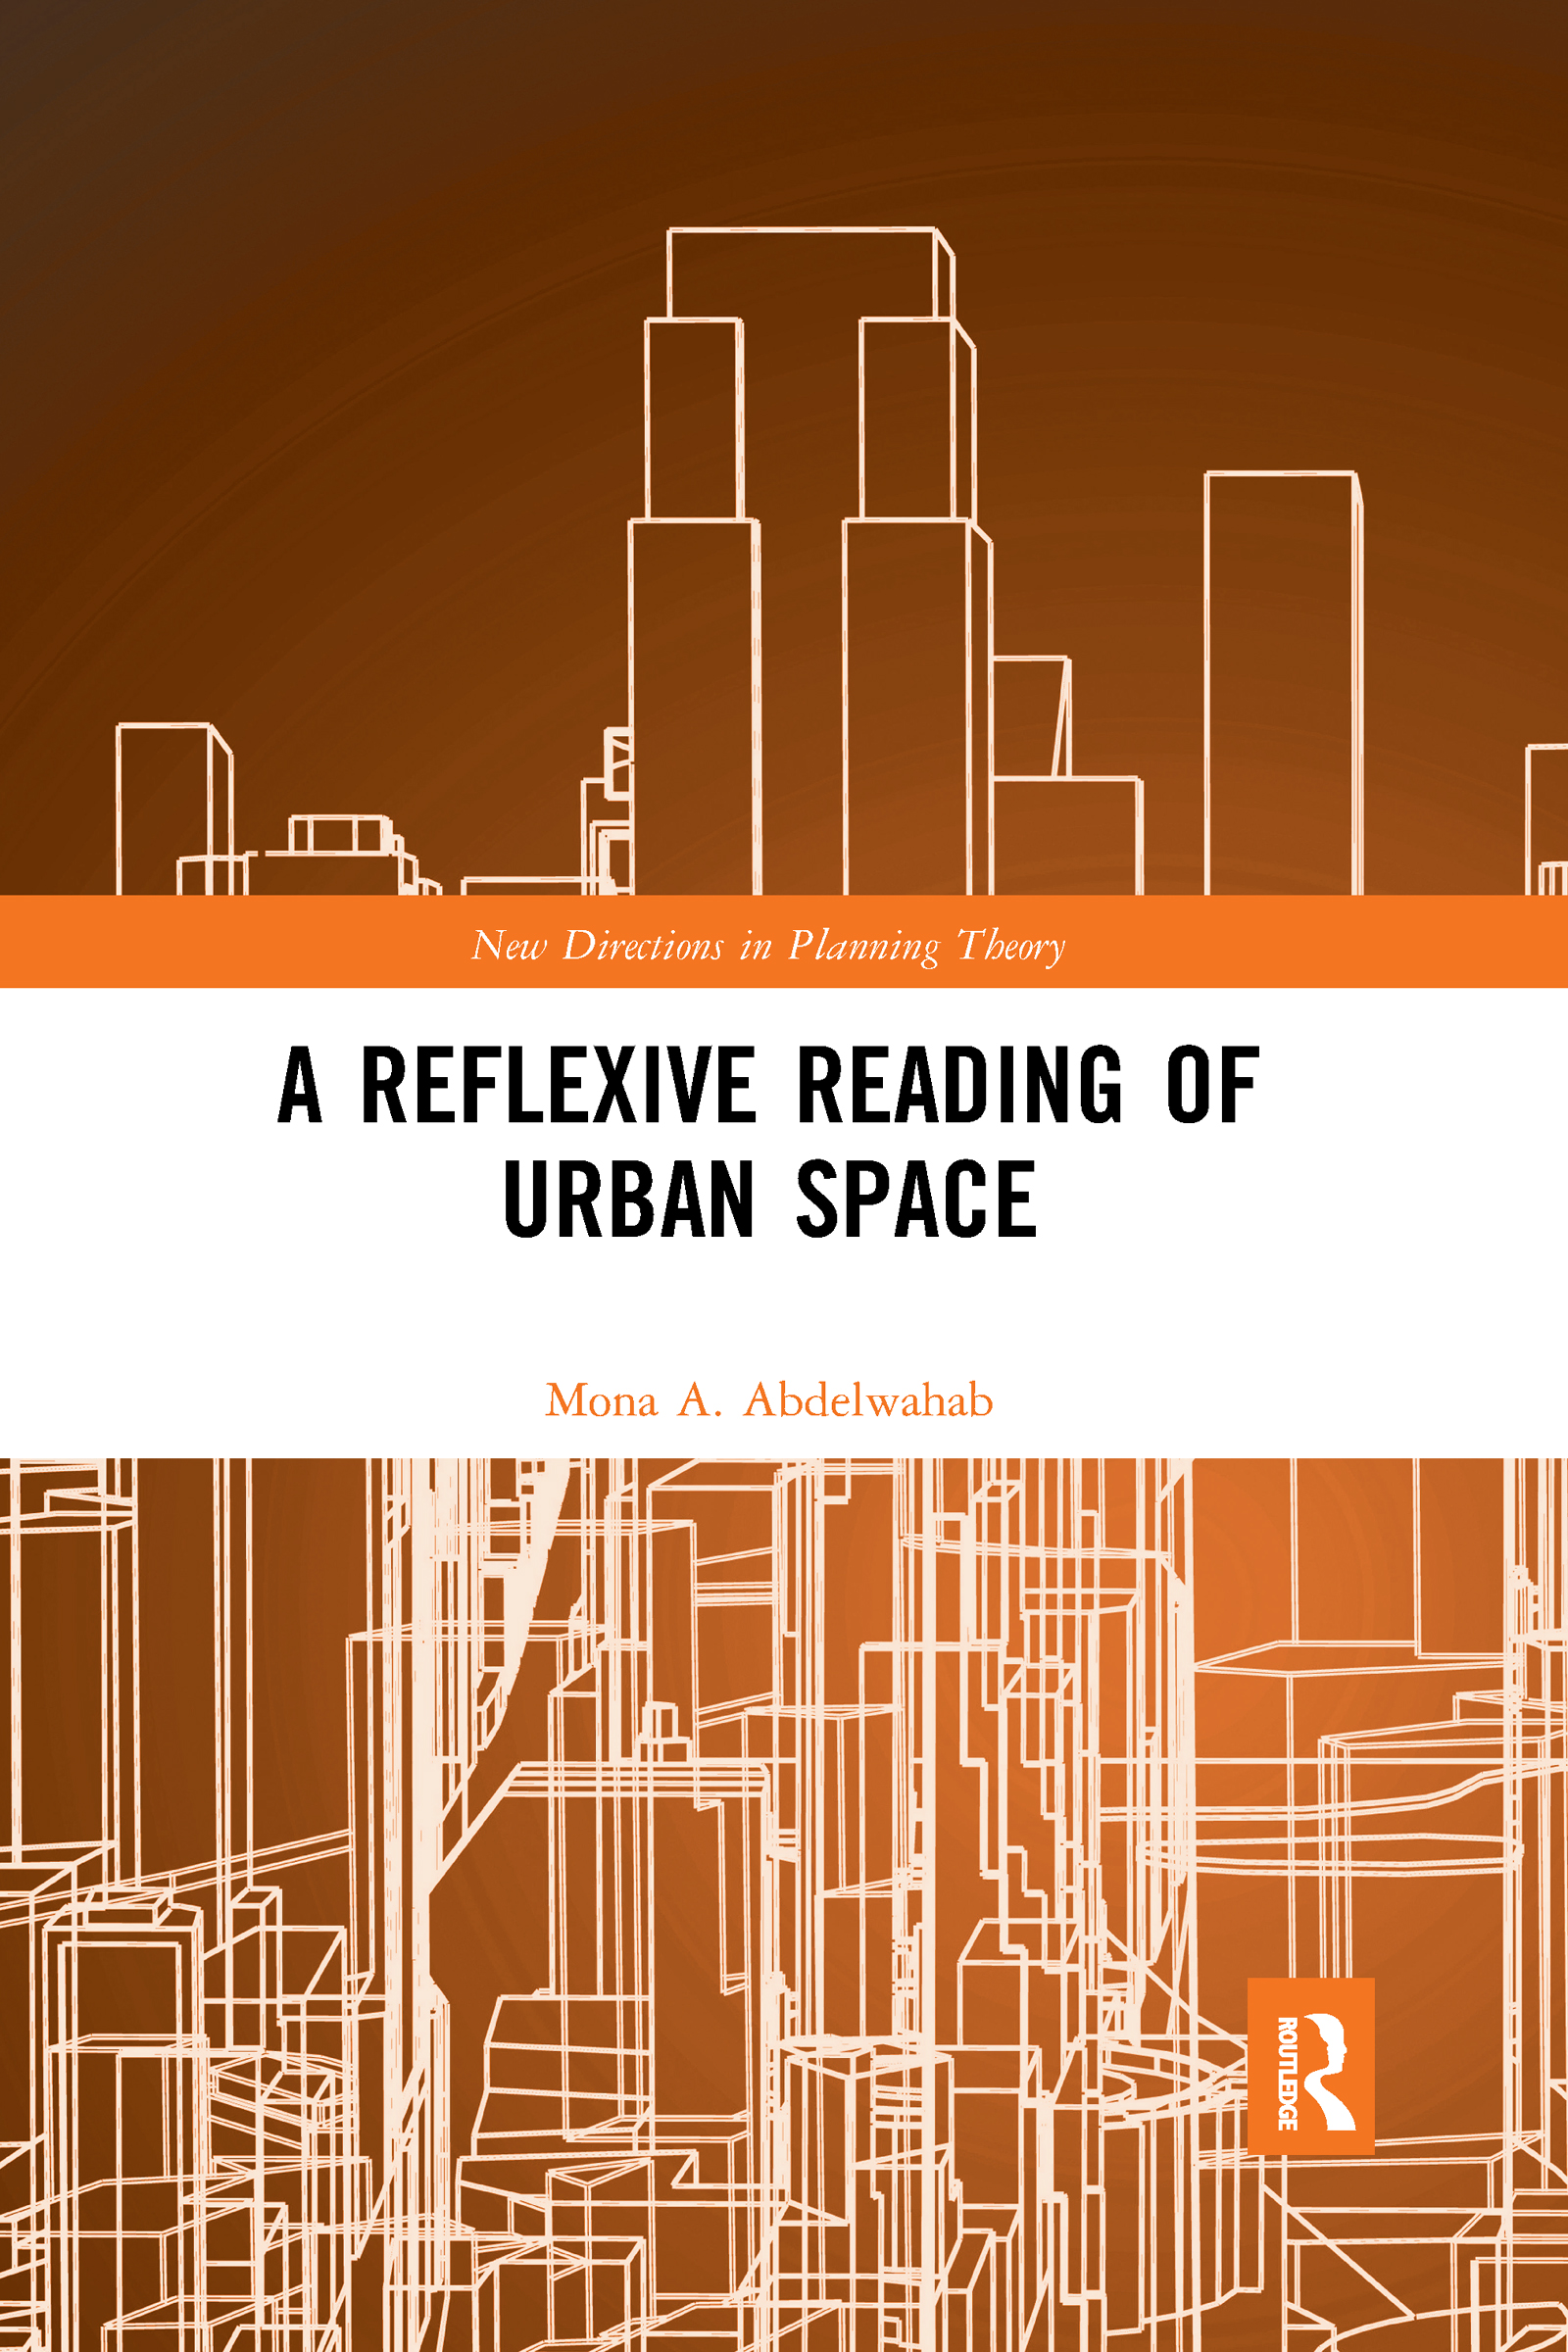 A Reflexive Reading of Urban Space